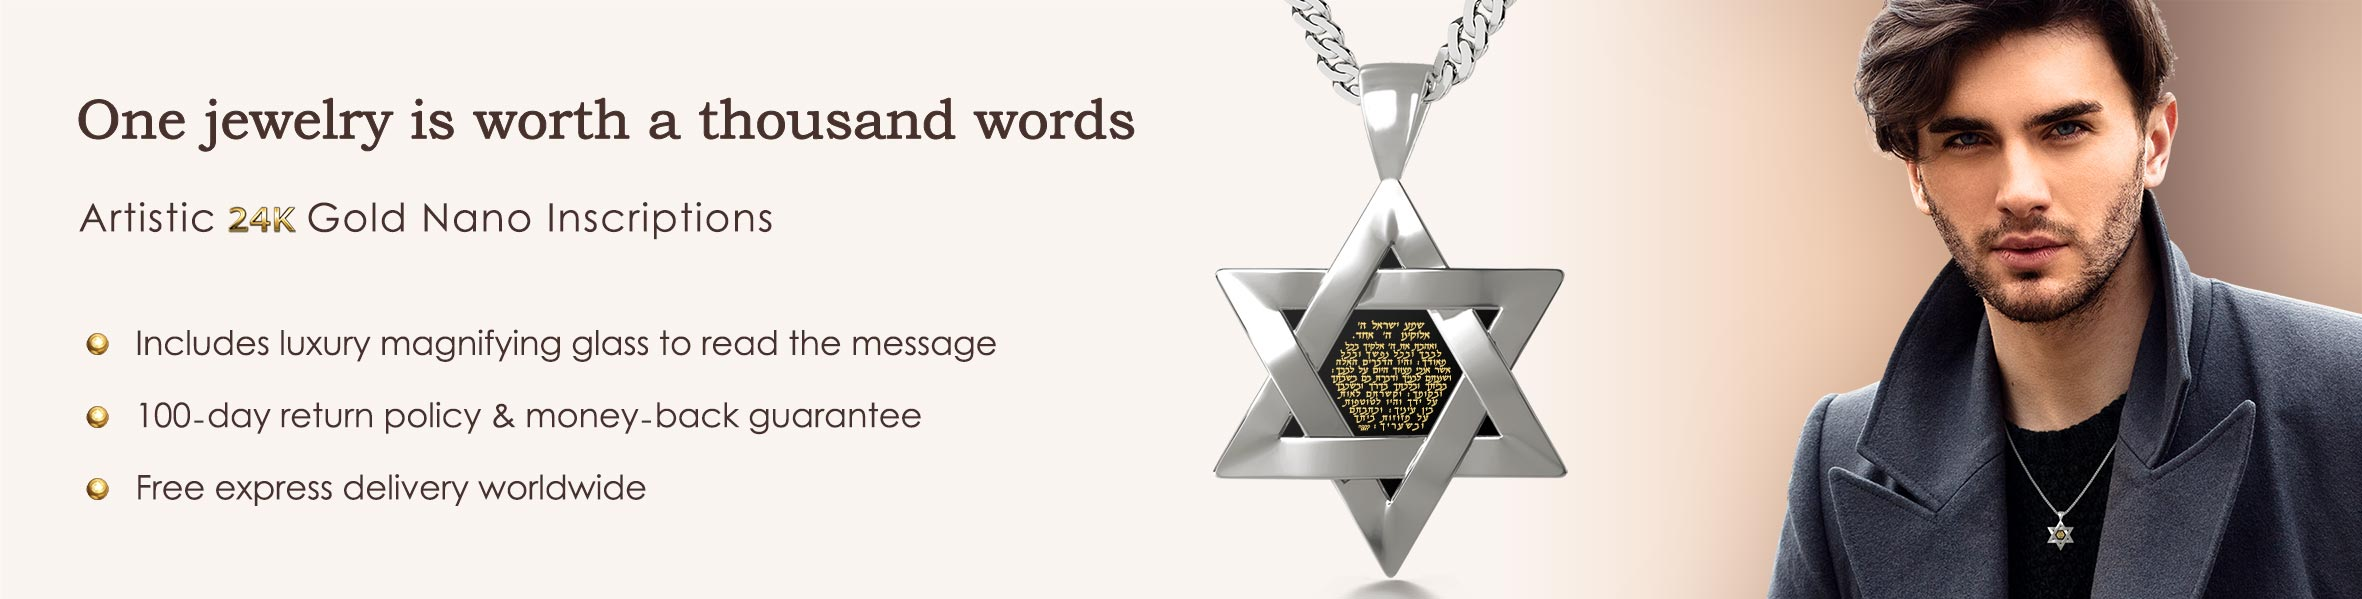 Jewish Gifts and Jewelry from Israel